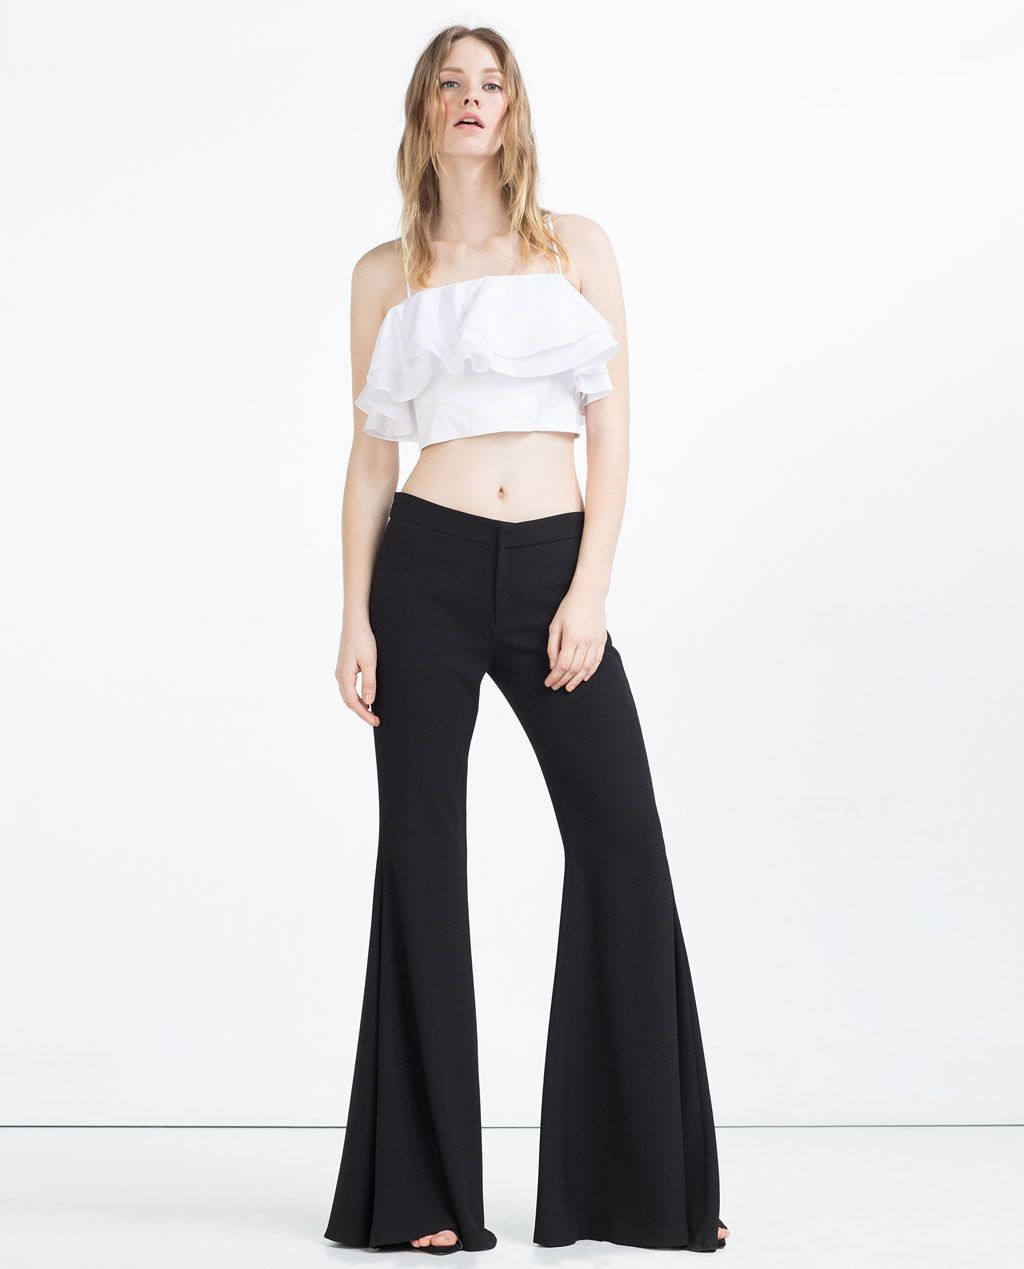 ZARA - WOMAN - EXTRA FLARED TROUSERS. These remind me of Selena Quintanilla- WANT!